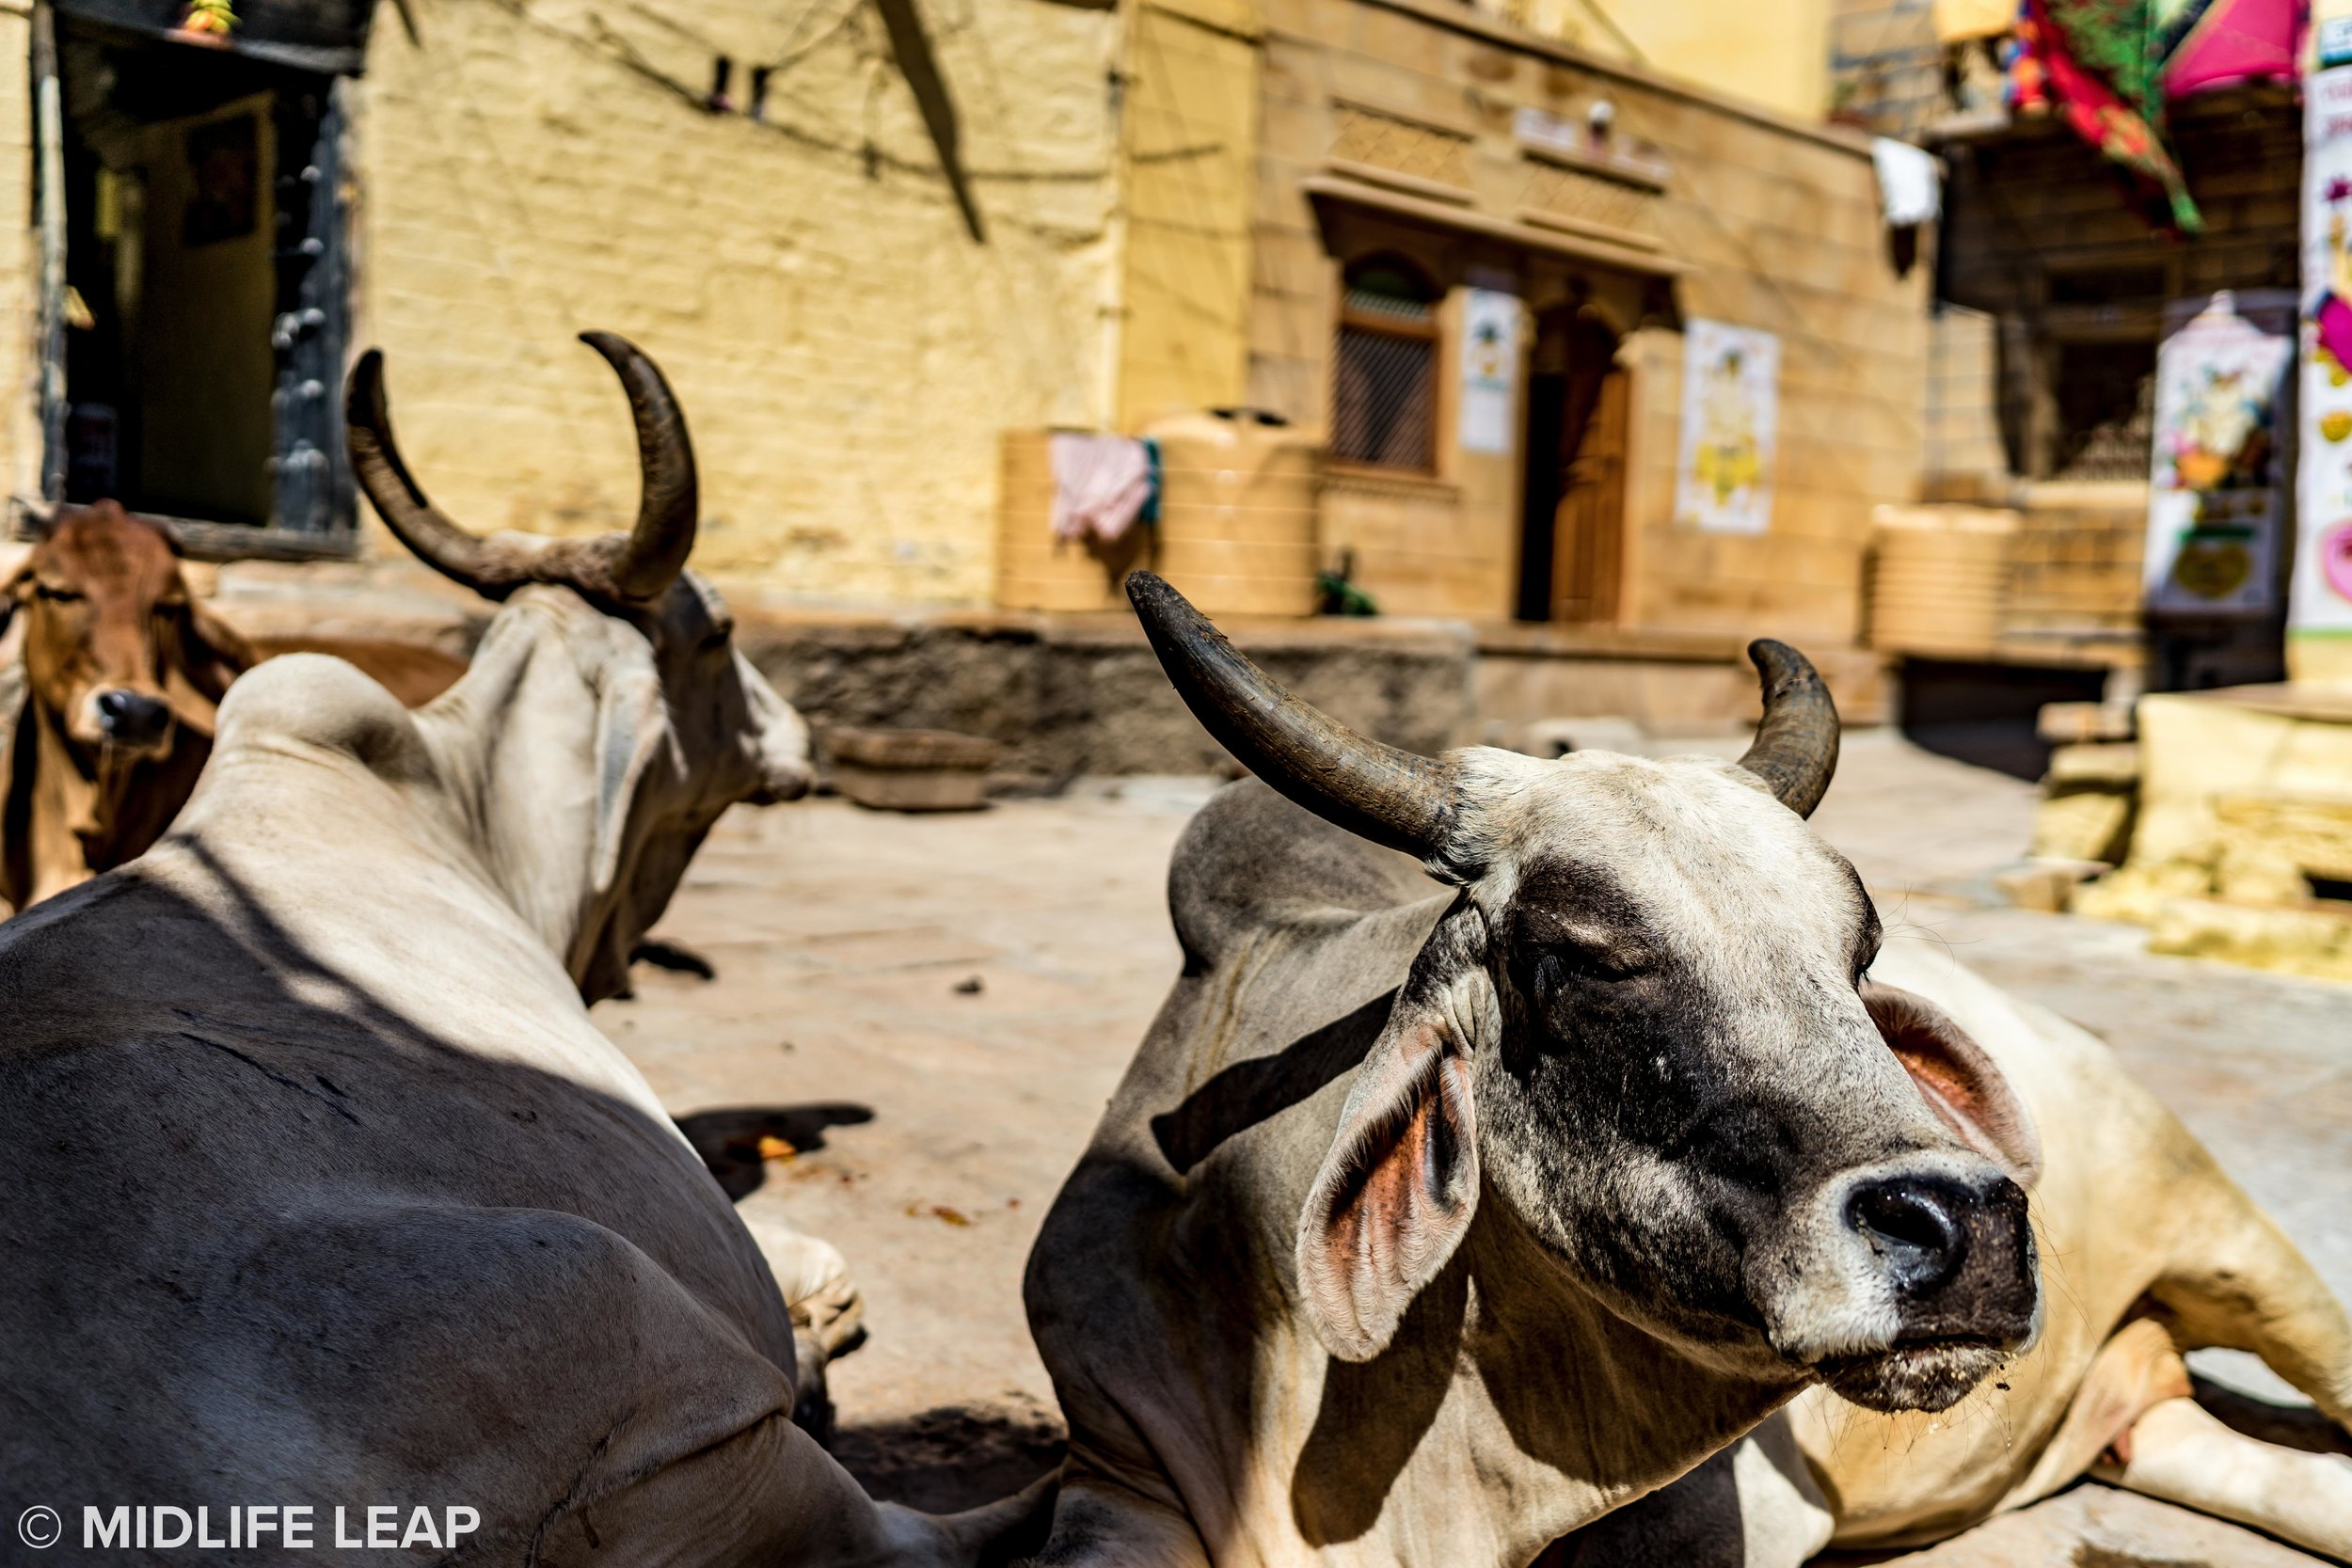 cows-of-india-inside-jaisalmer-fort-rajasthan.jpg